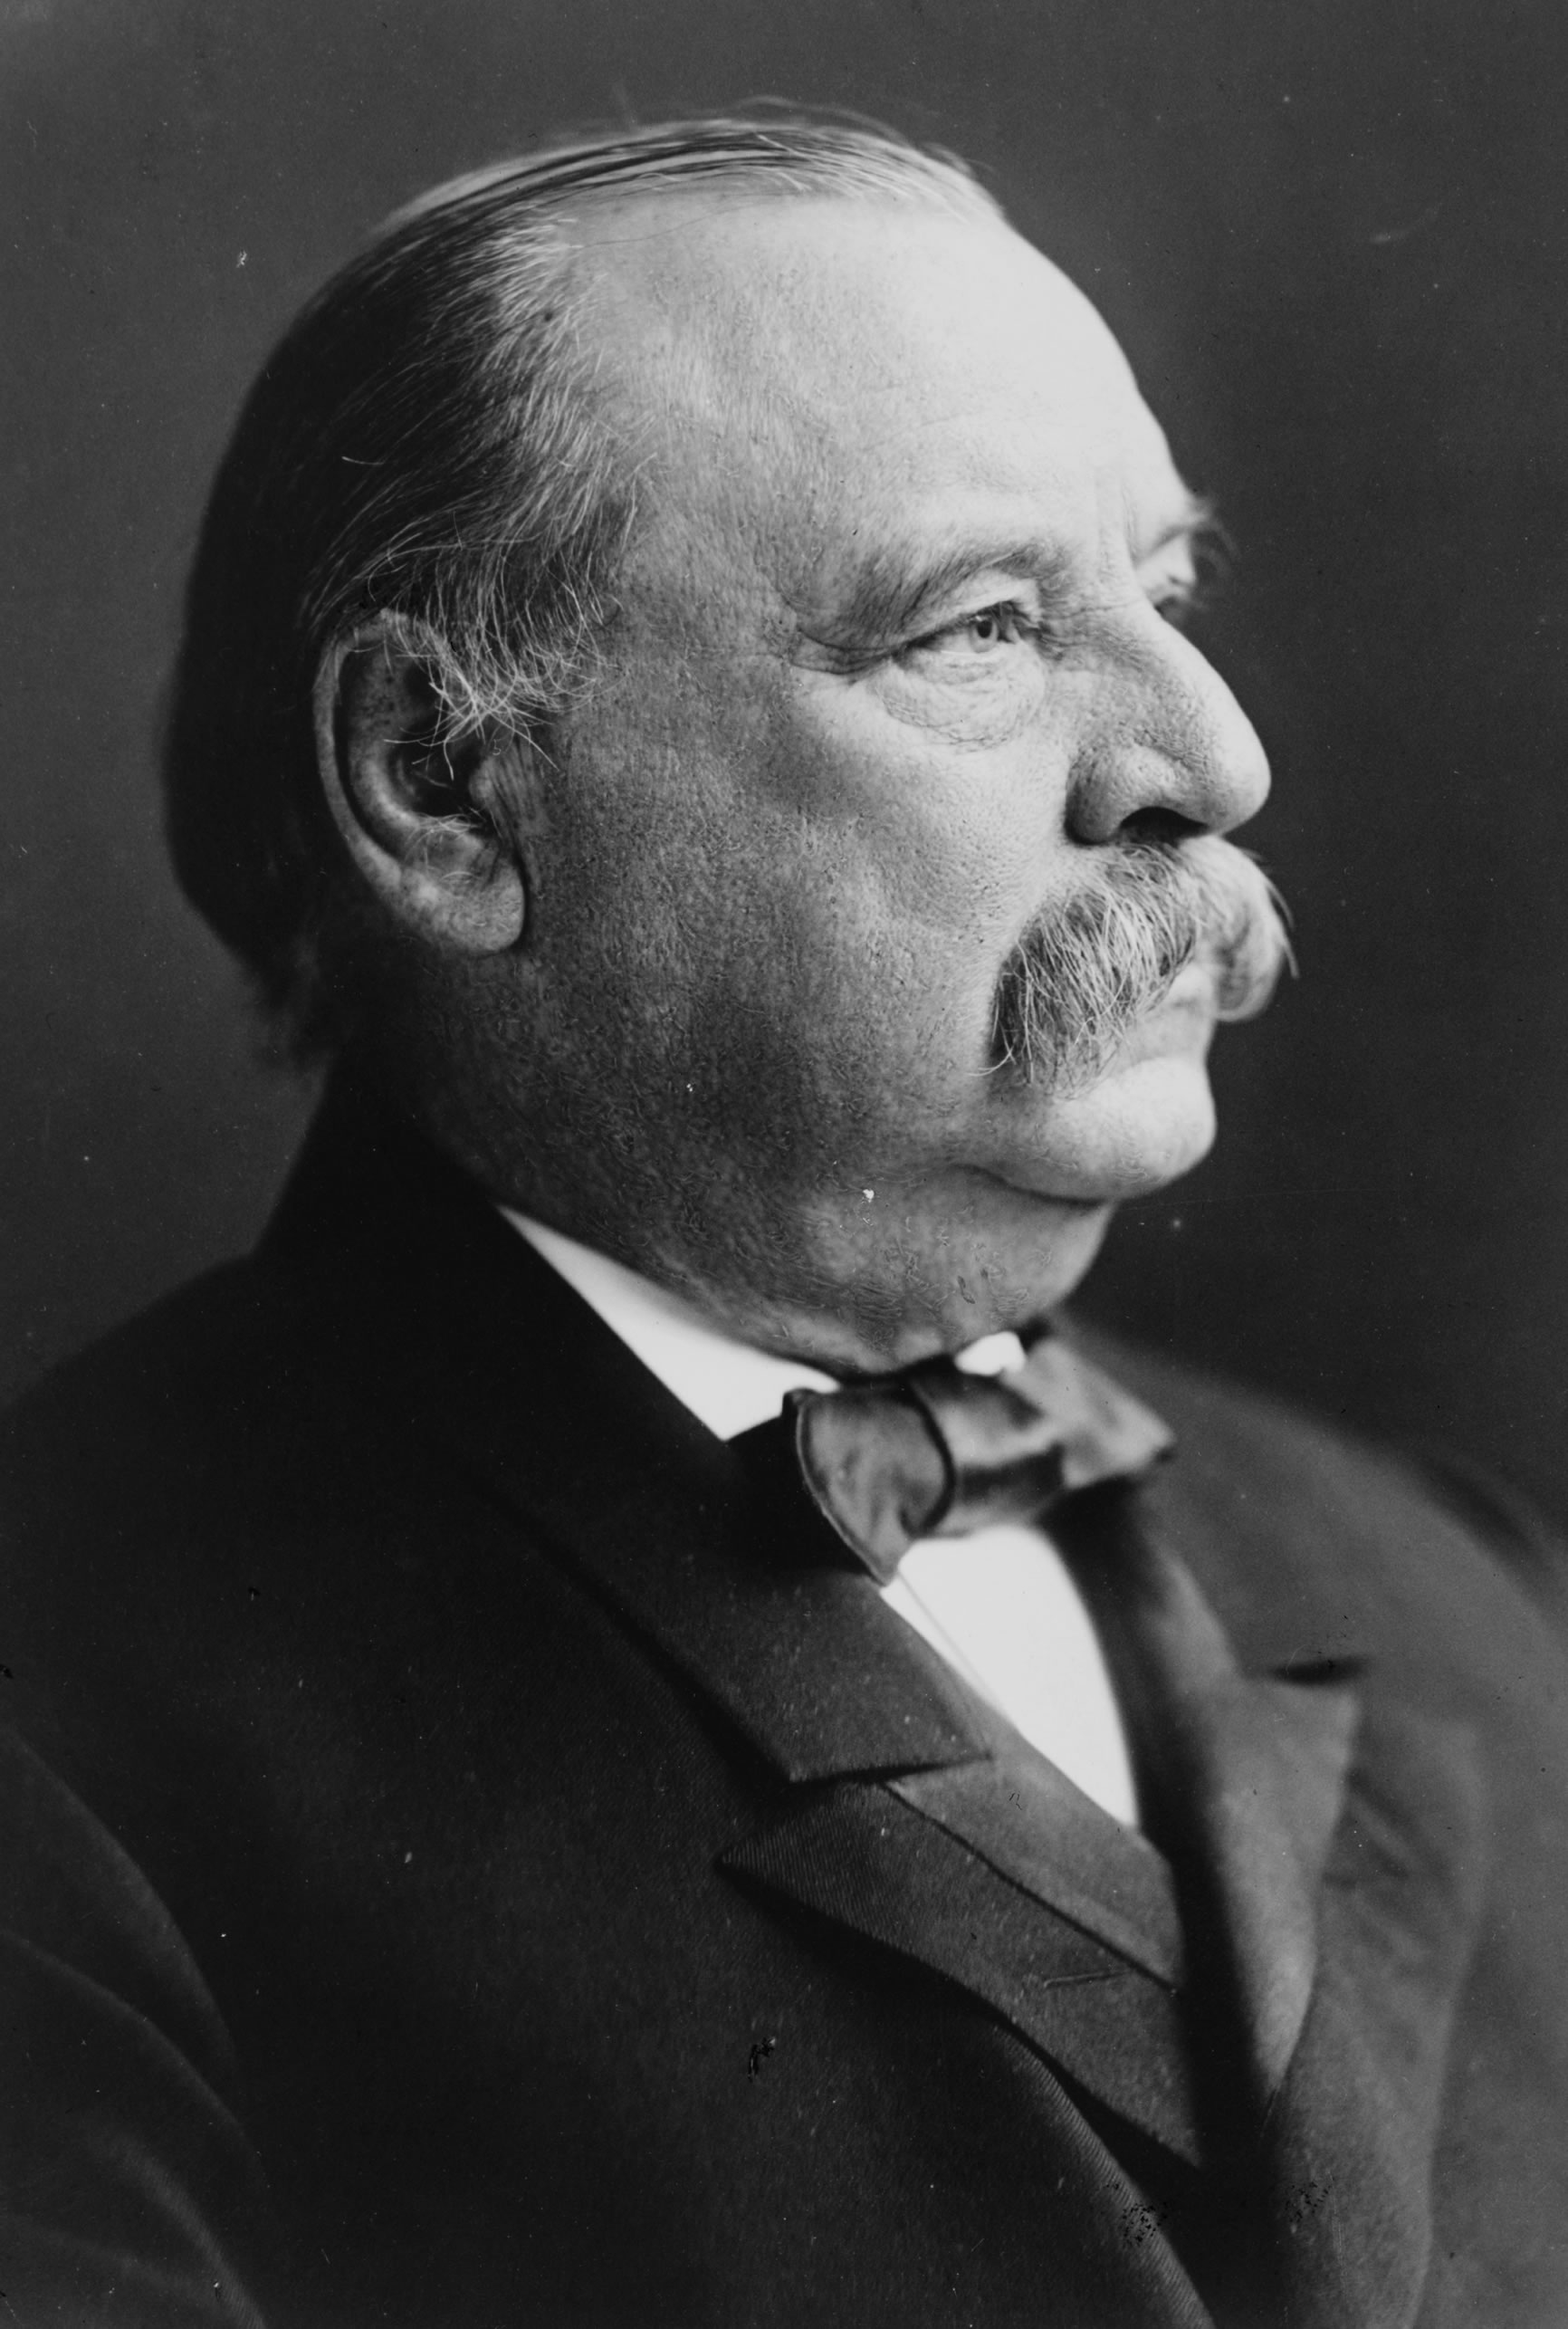 Depiction of Grover Cleveland